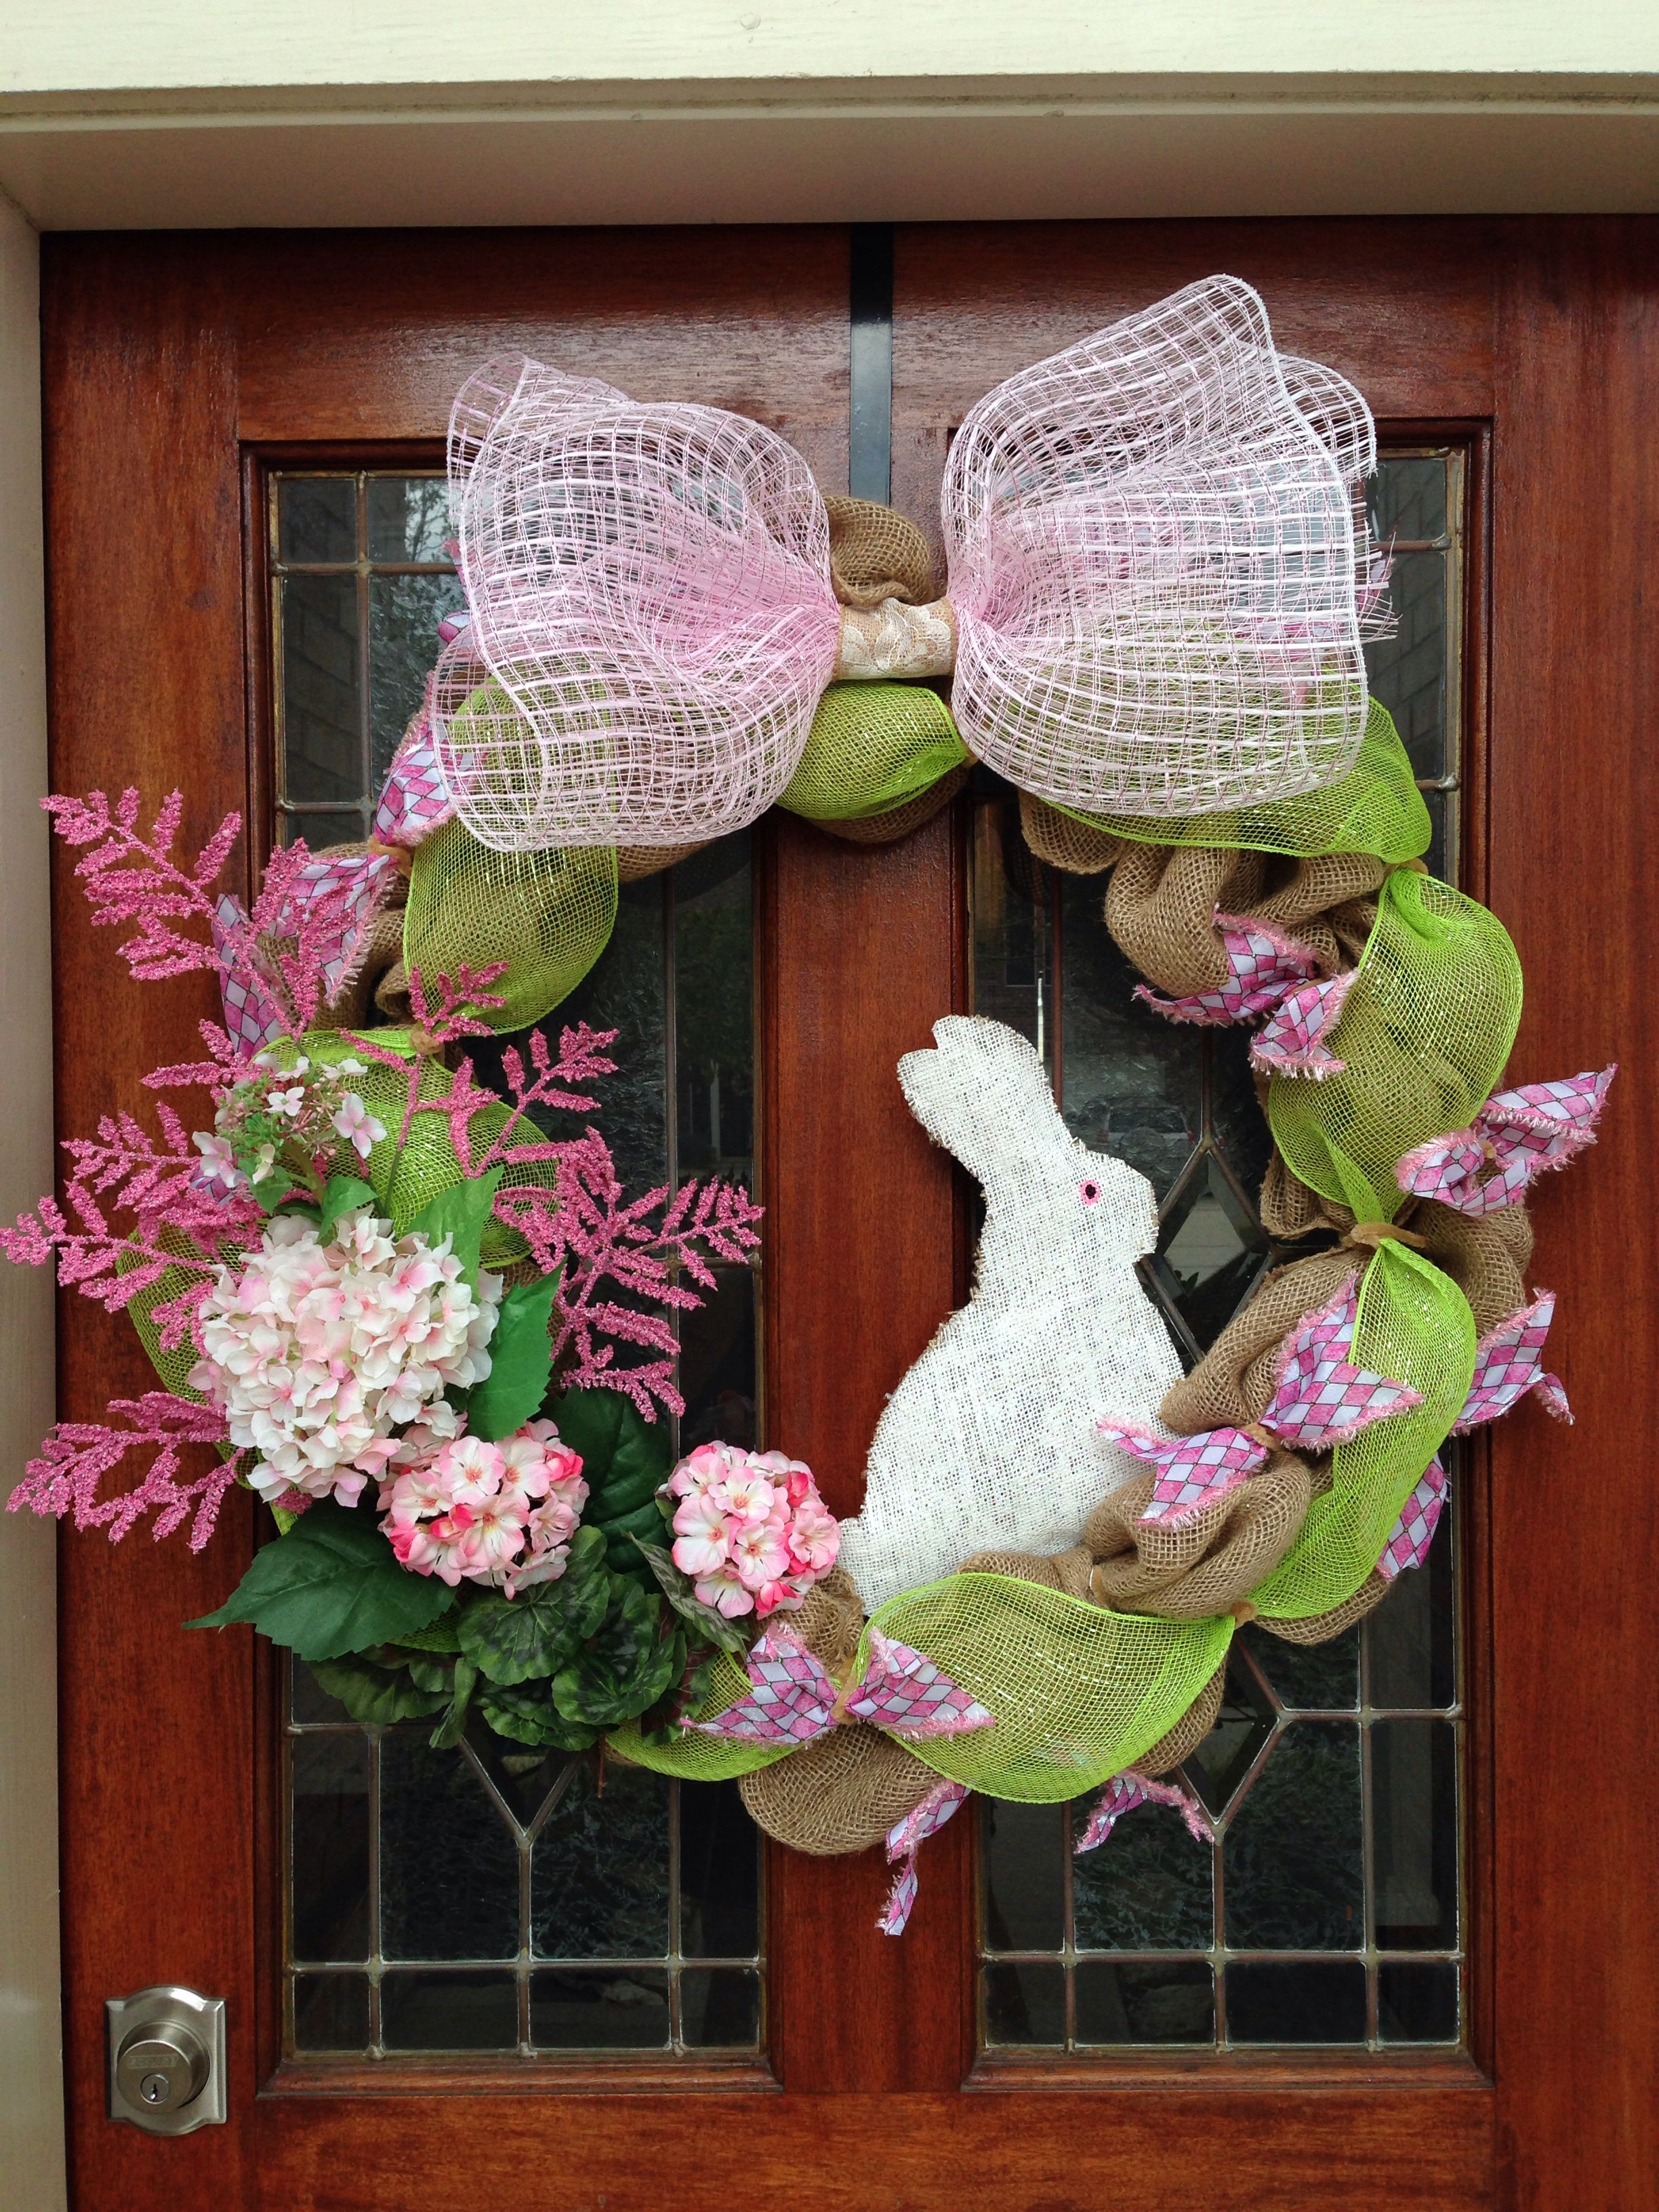 My new Spring wreath!